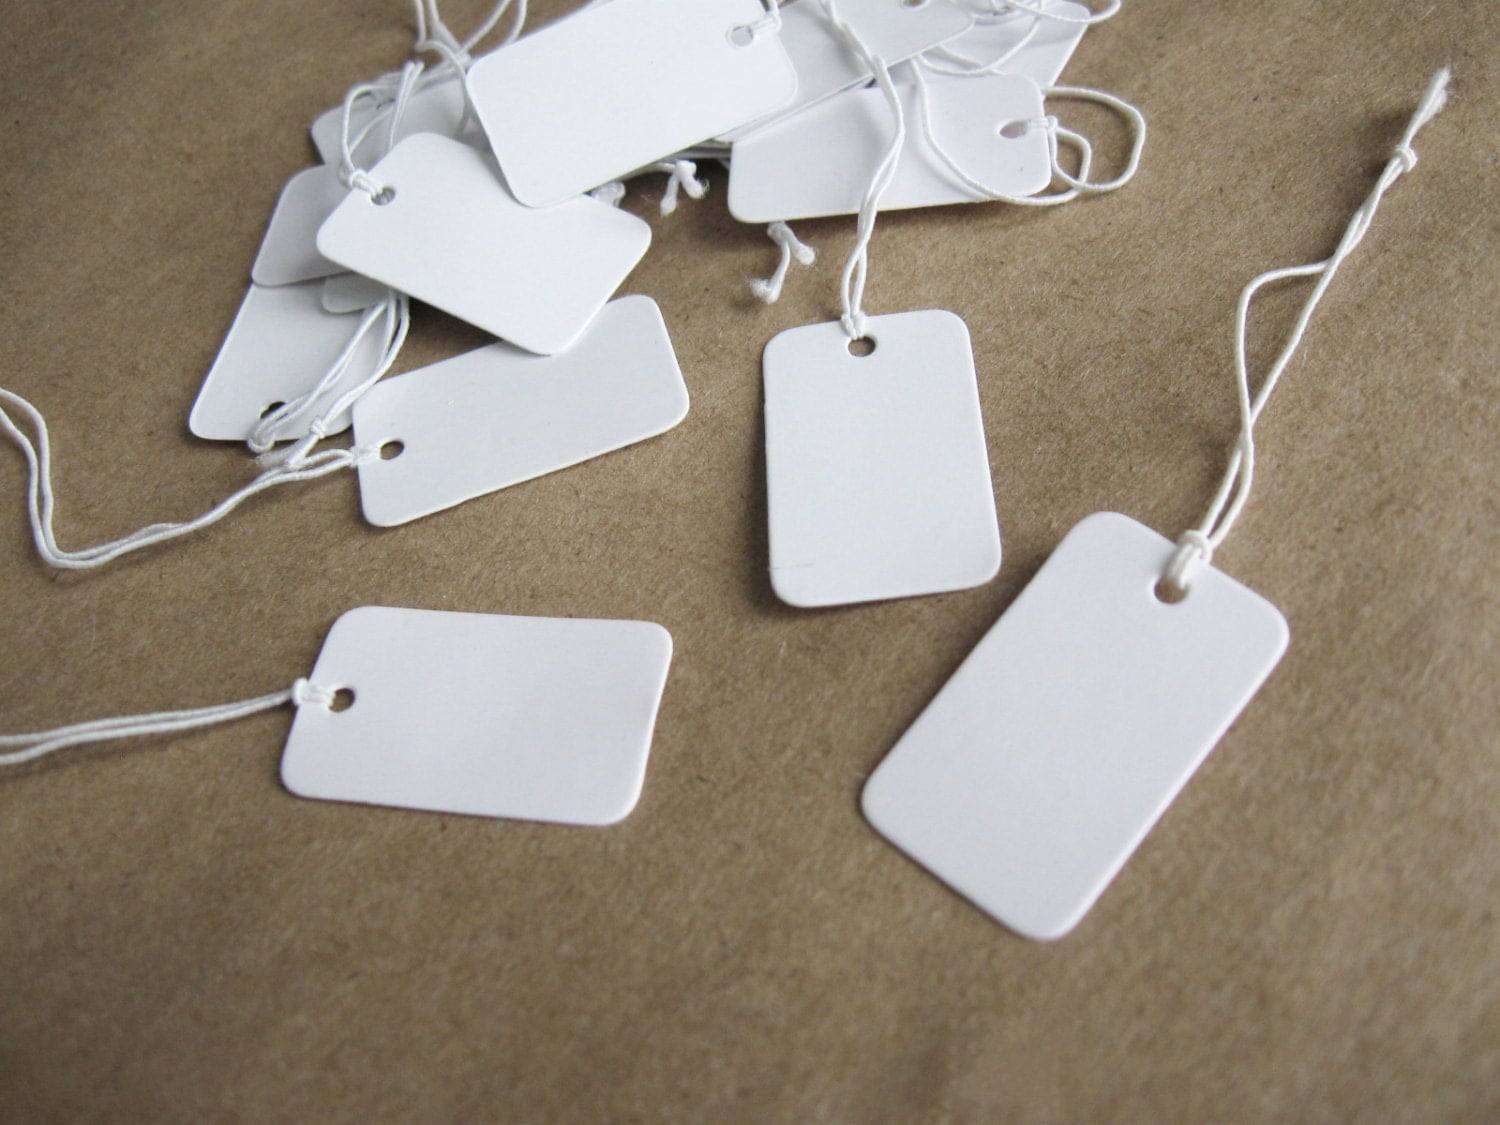 jewelry pricing tags jewelry price tags blank white rectangle tags set of 50 1860